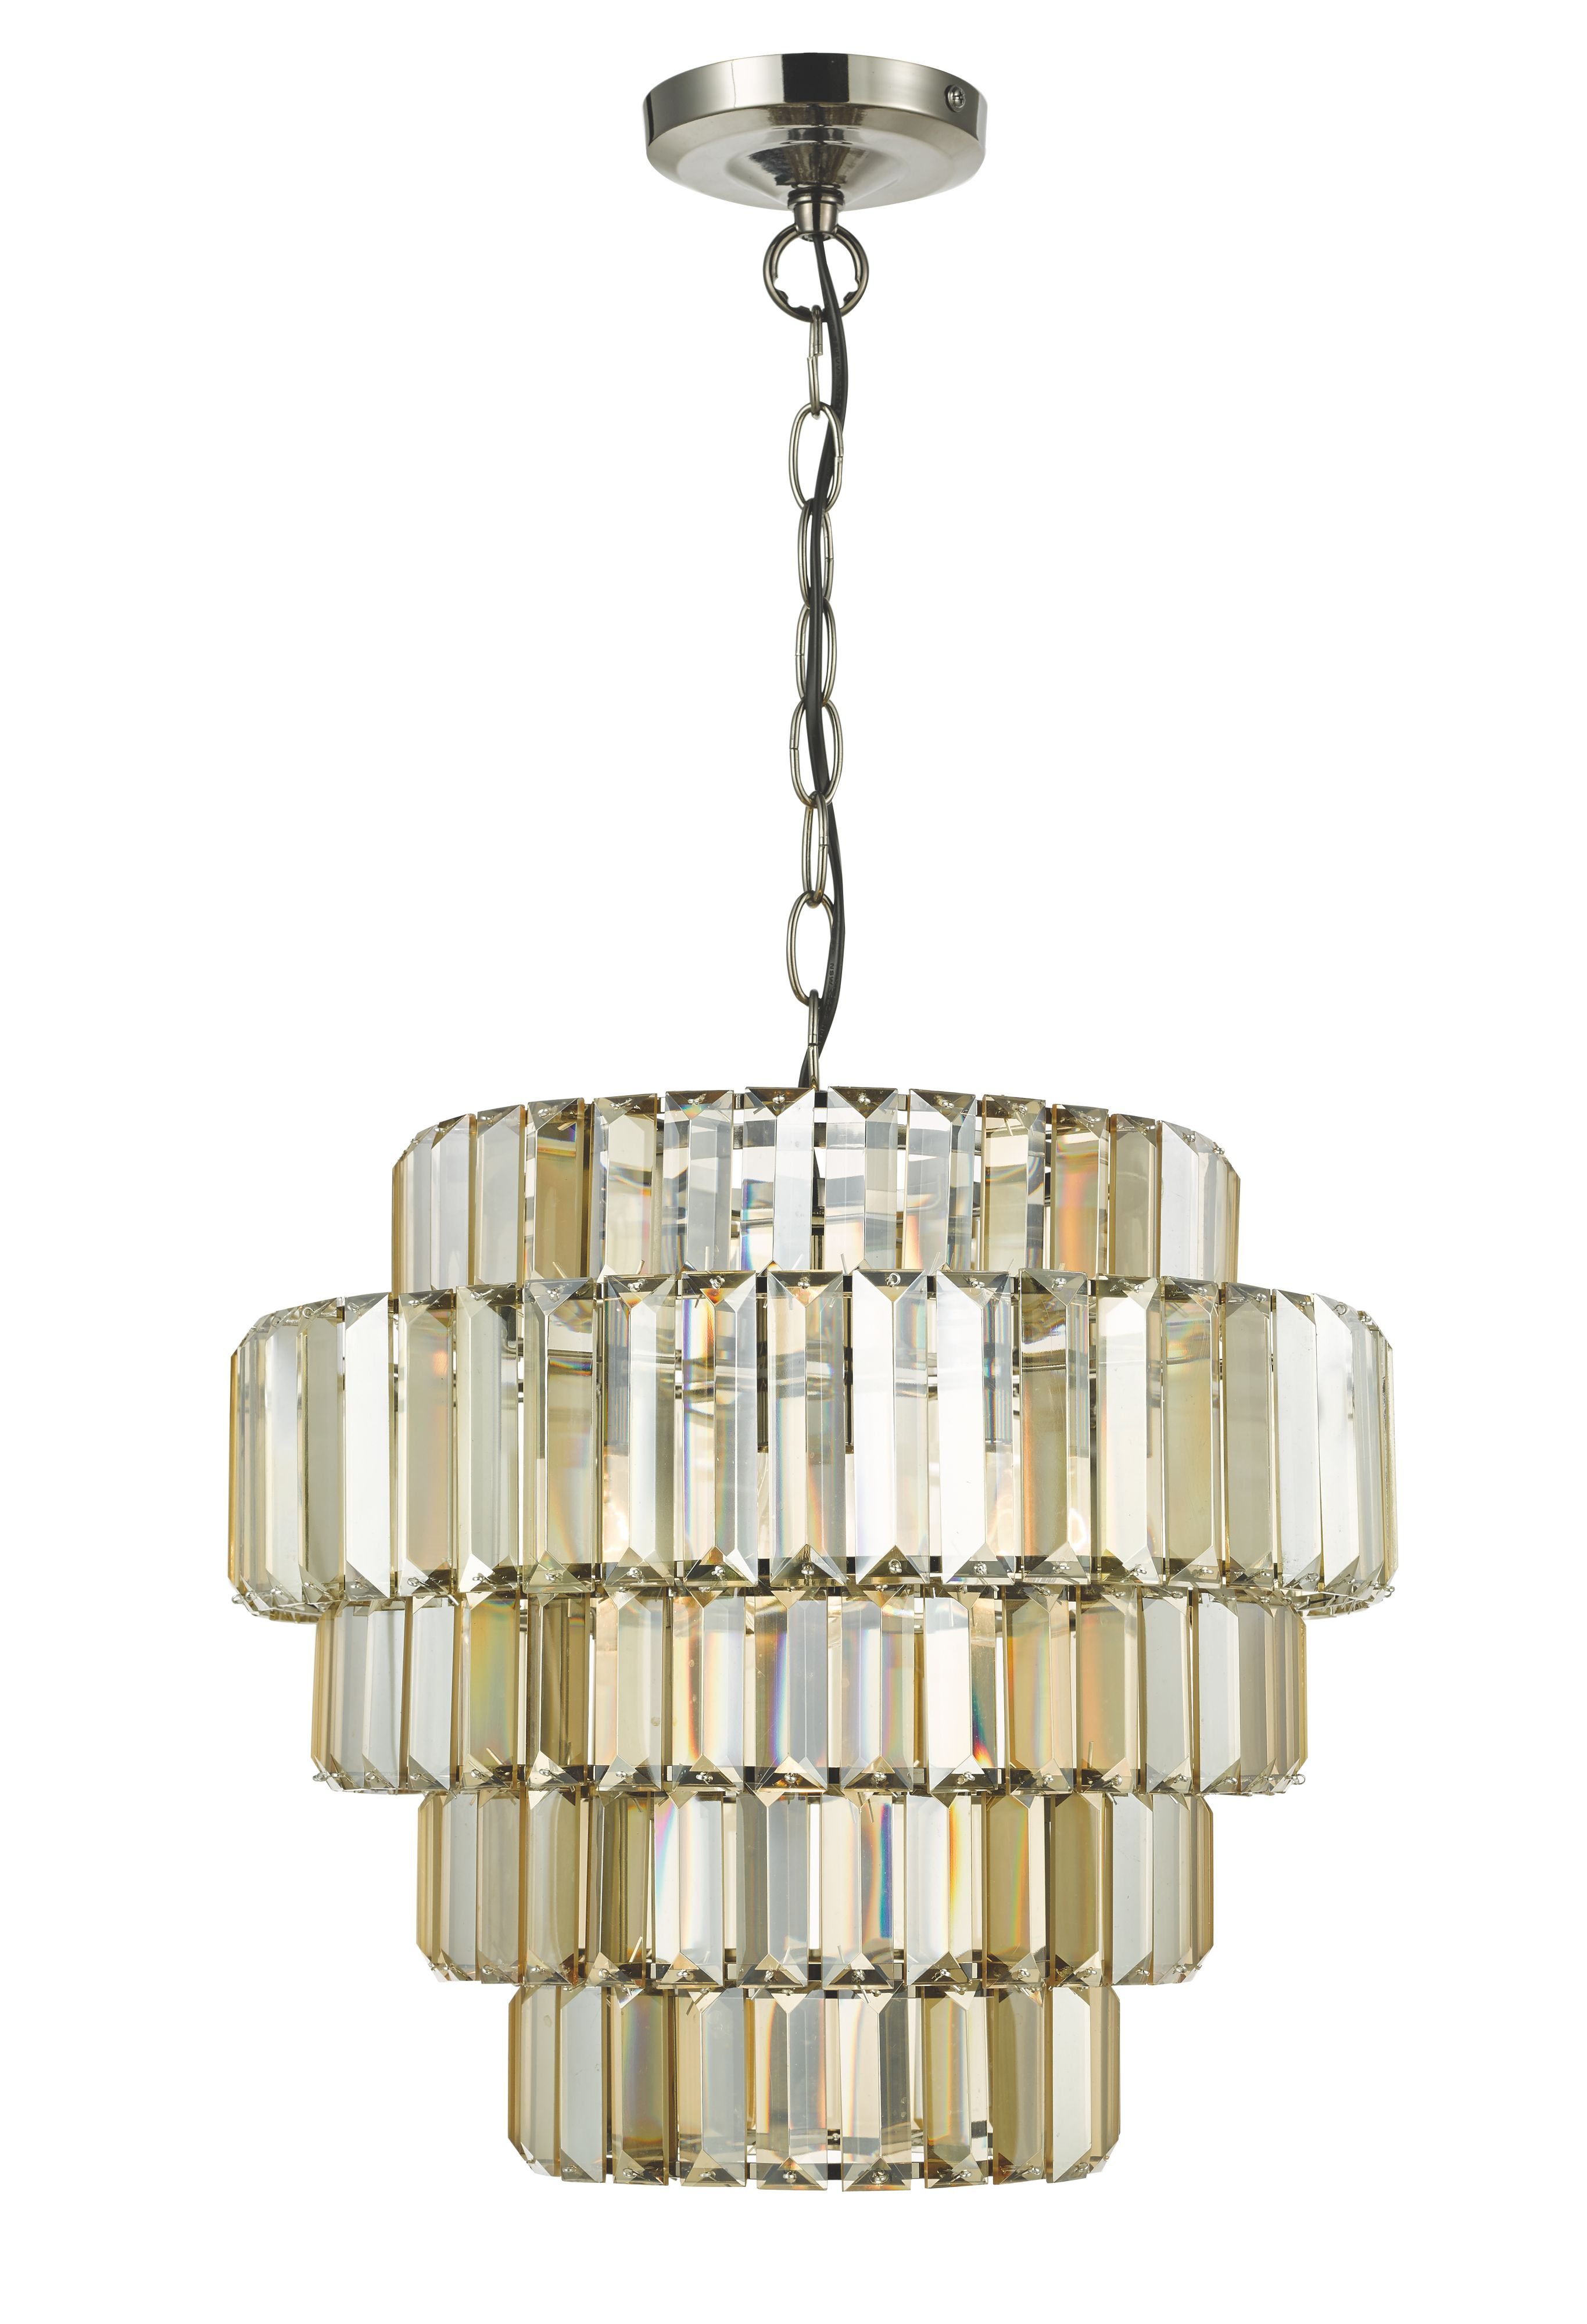 House Of Fraser Lighting Sale UK Lights, Lamps, Shades & Accessories